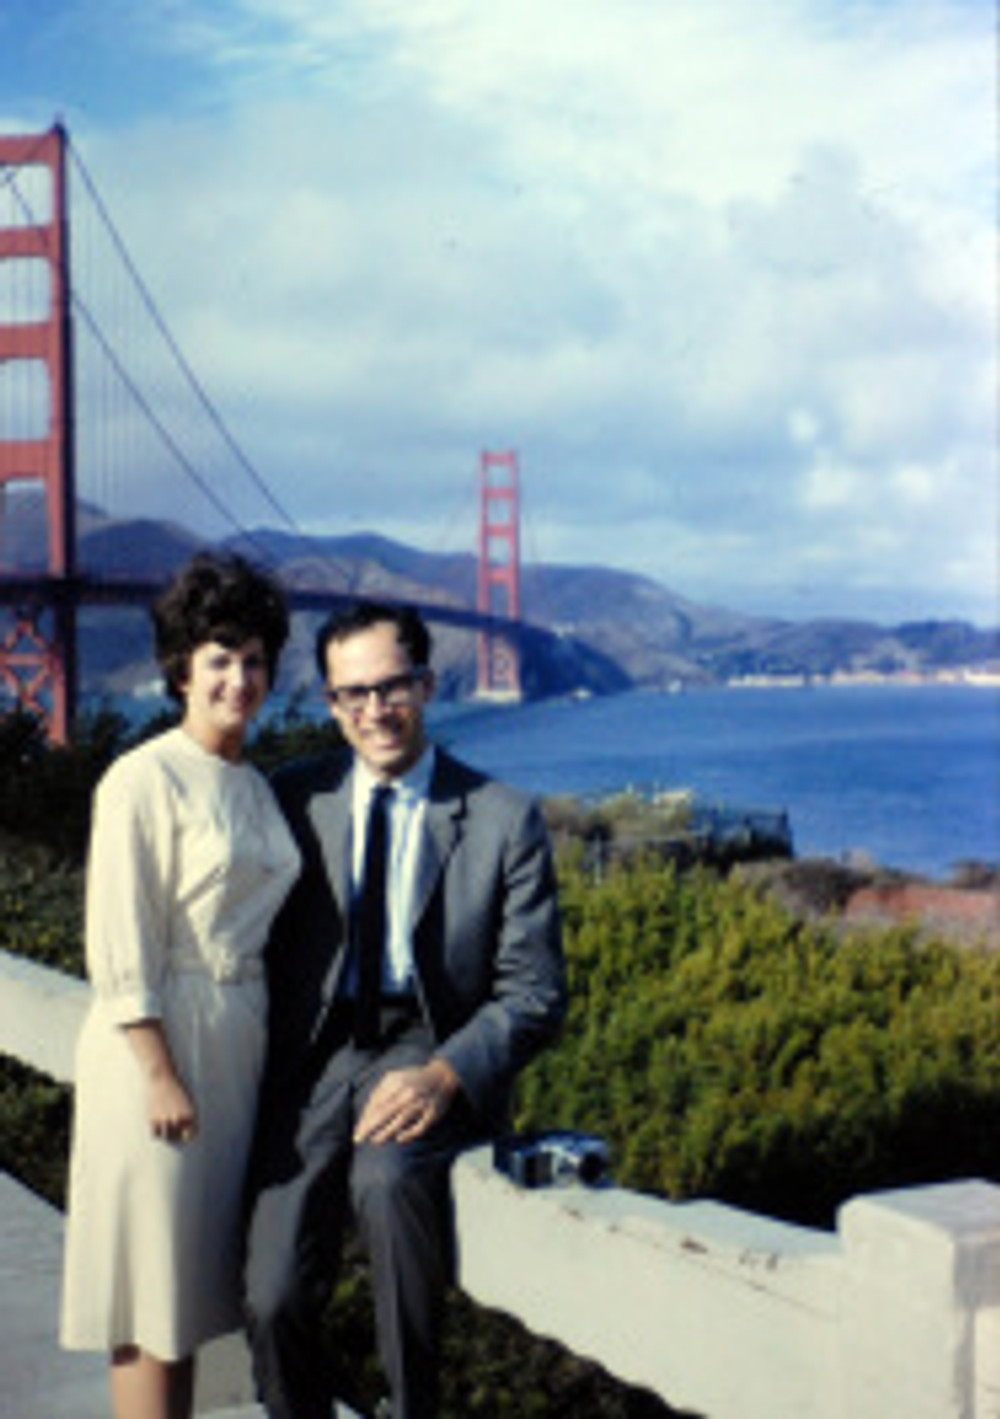 mom and dad and the bridge